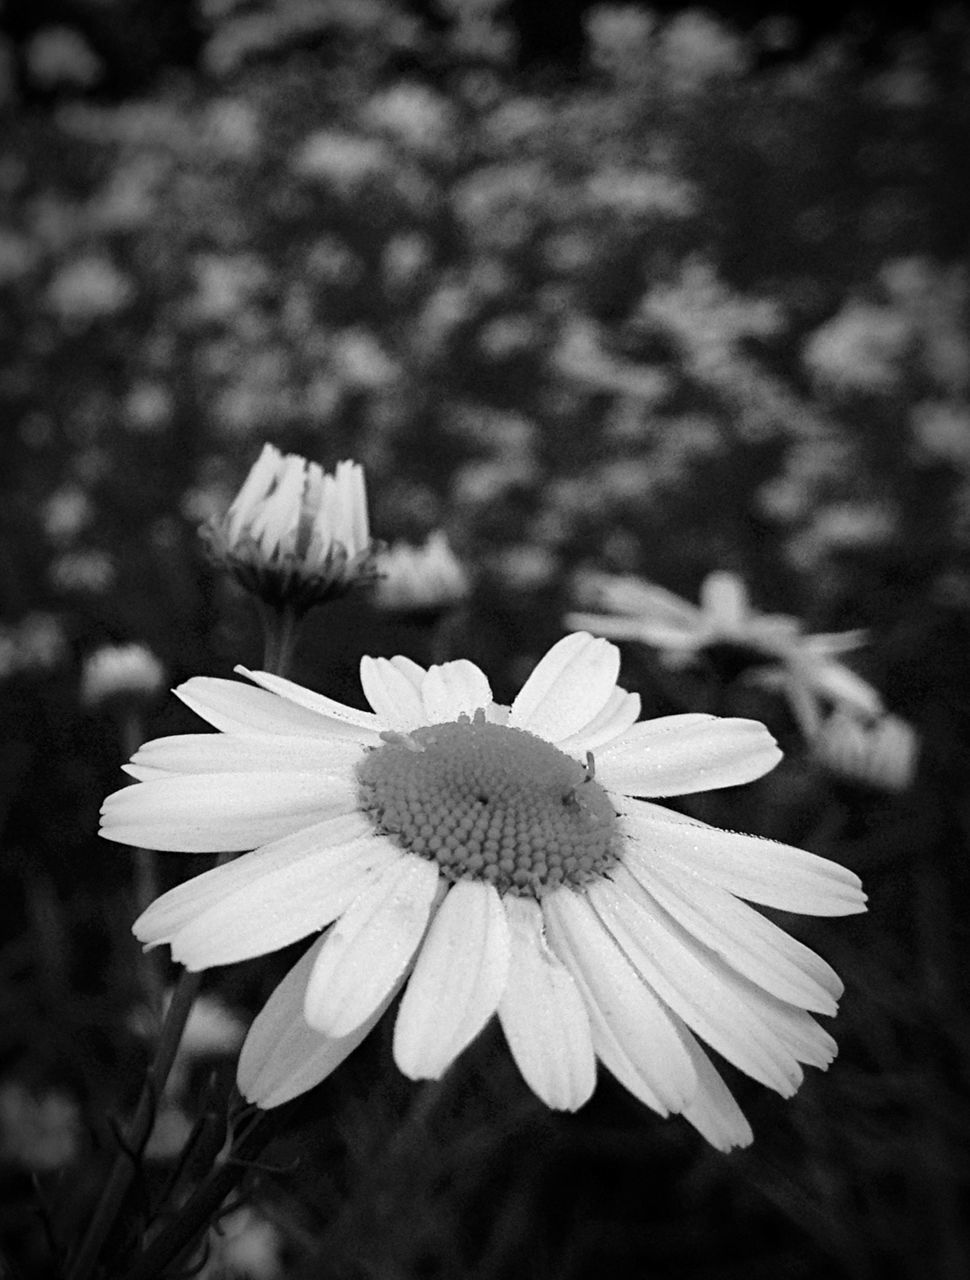 flower, petal, fragility, flower head, growth, nature, blooming, freshness, beauty in nature, focus on foreground, plant, day, close-up, outdoors, no people, osteospermum